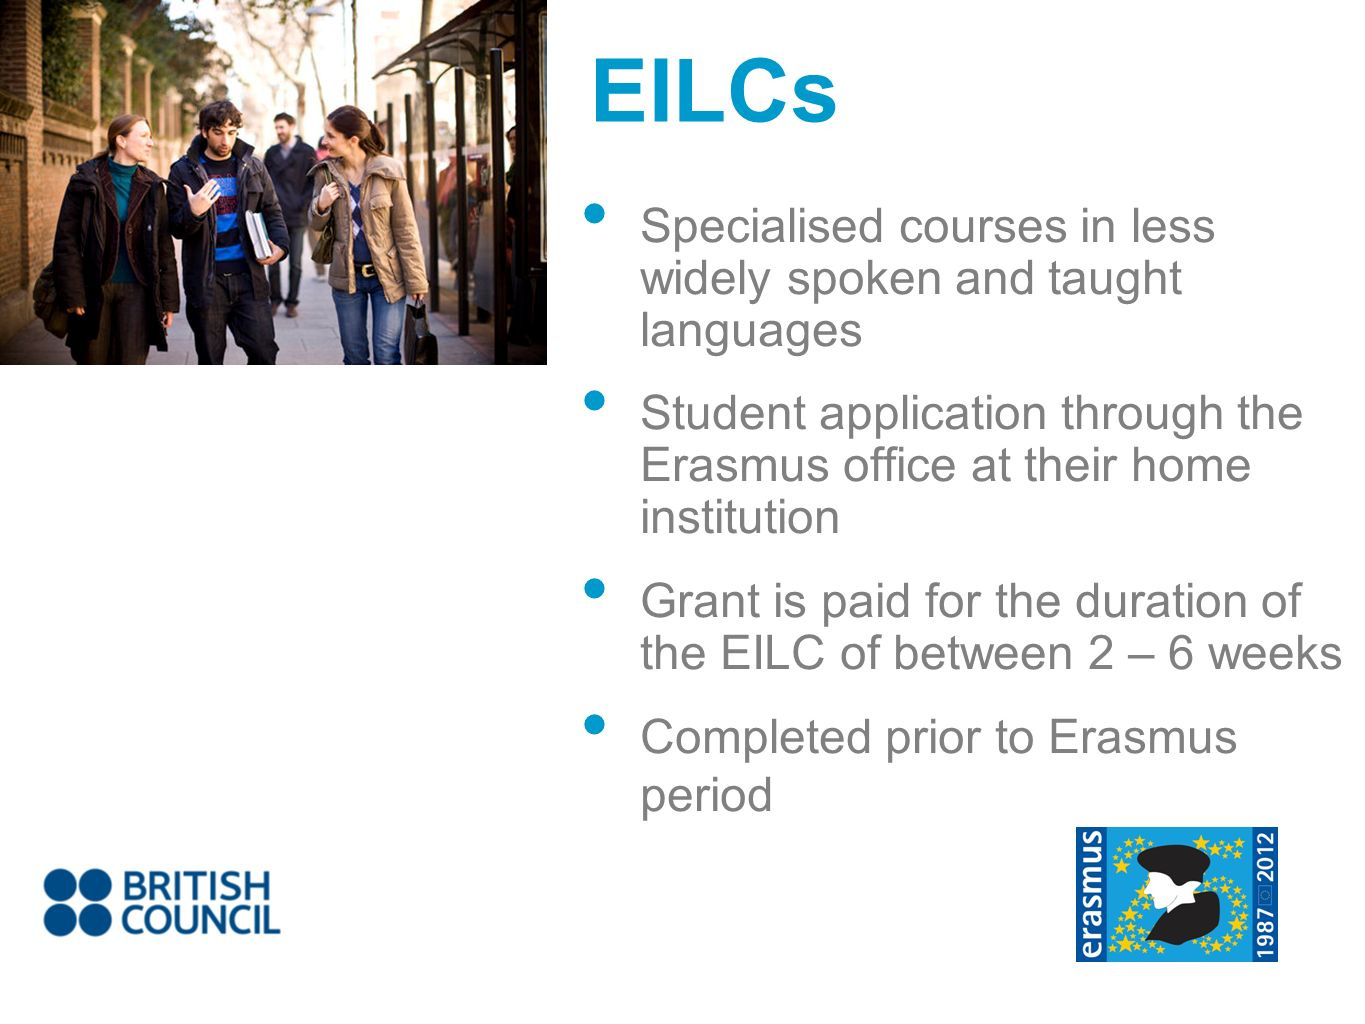 EILCs Specialised courses in less widely spoken and taught languages Student application through the Erasmus office at their home institution Grant is paid for the duration of the EILC of between 2 – 6 weeks Completed prior to Erasmus period